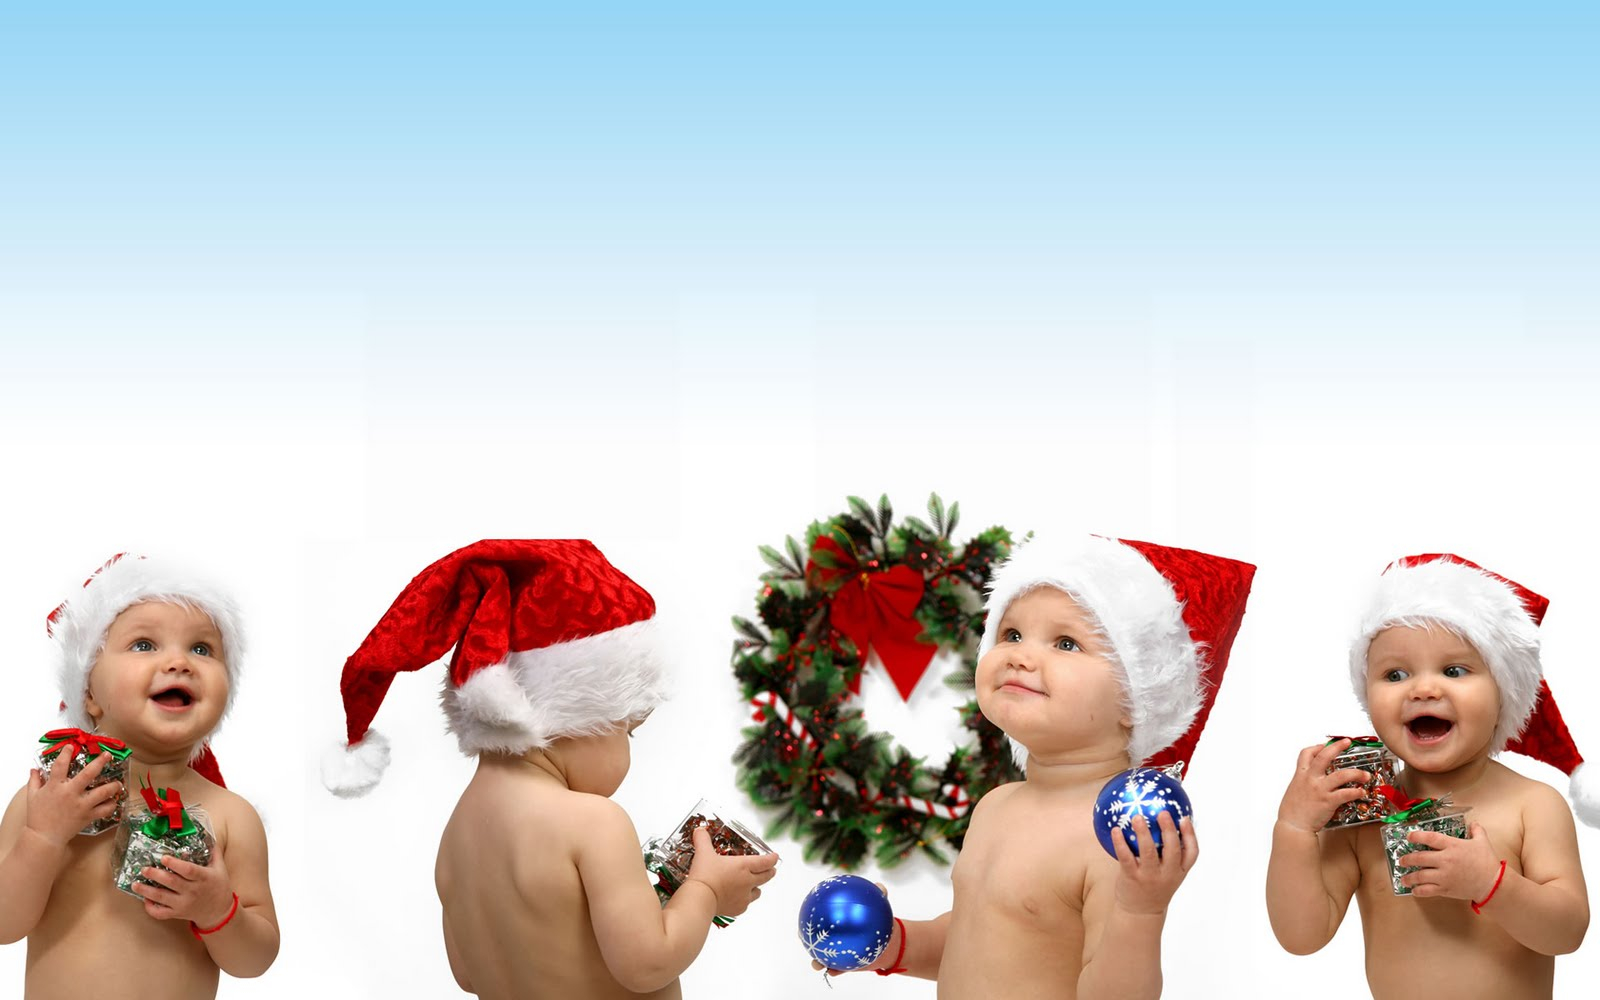 Download Free Small Cute Babies Wallpapers The Quotes Land: Meet The Cutest Christmas Babies Who Can Be On Your